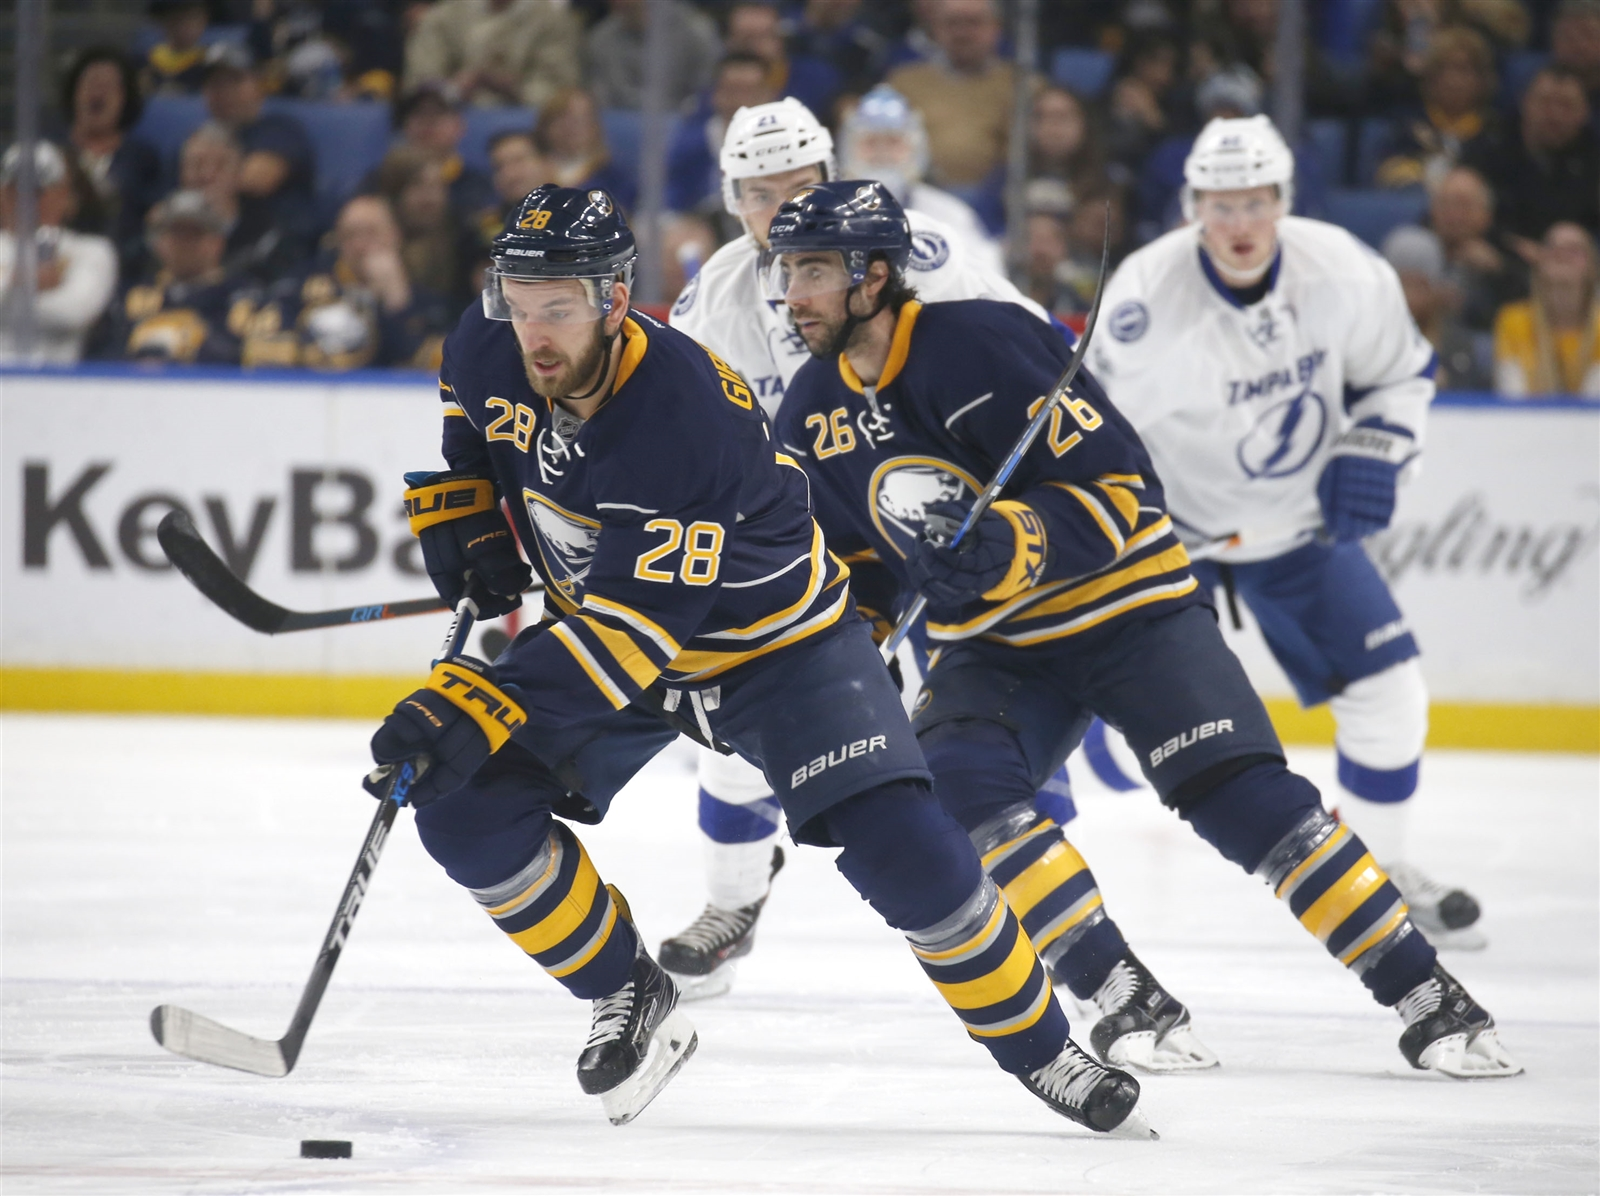 Sabres forwards Zemgus Girgensons (28) or Matt Moulson could end up in Las Vegas. (Robert Kirkham/Buffalo News)